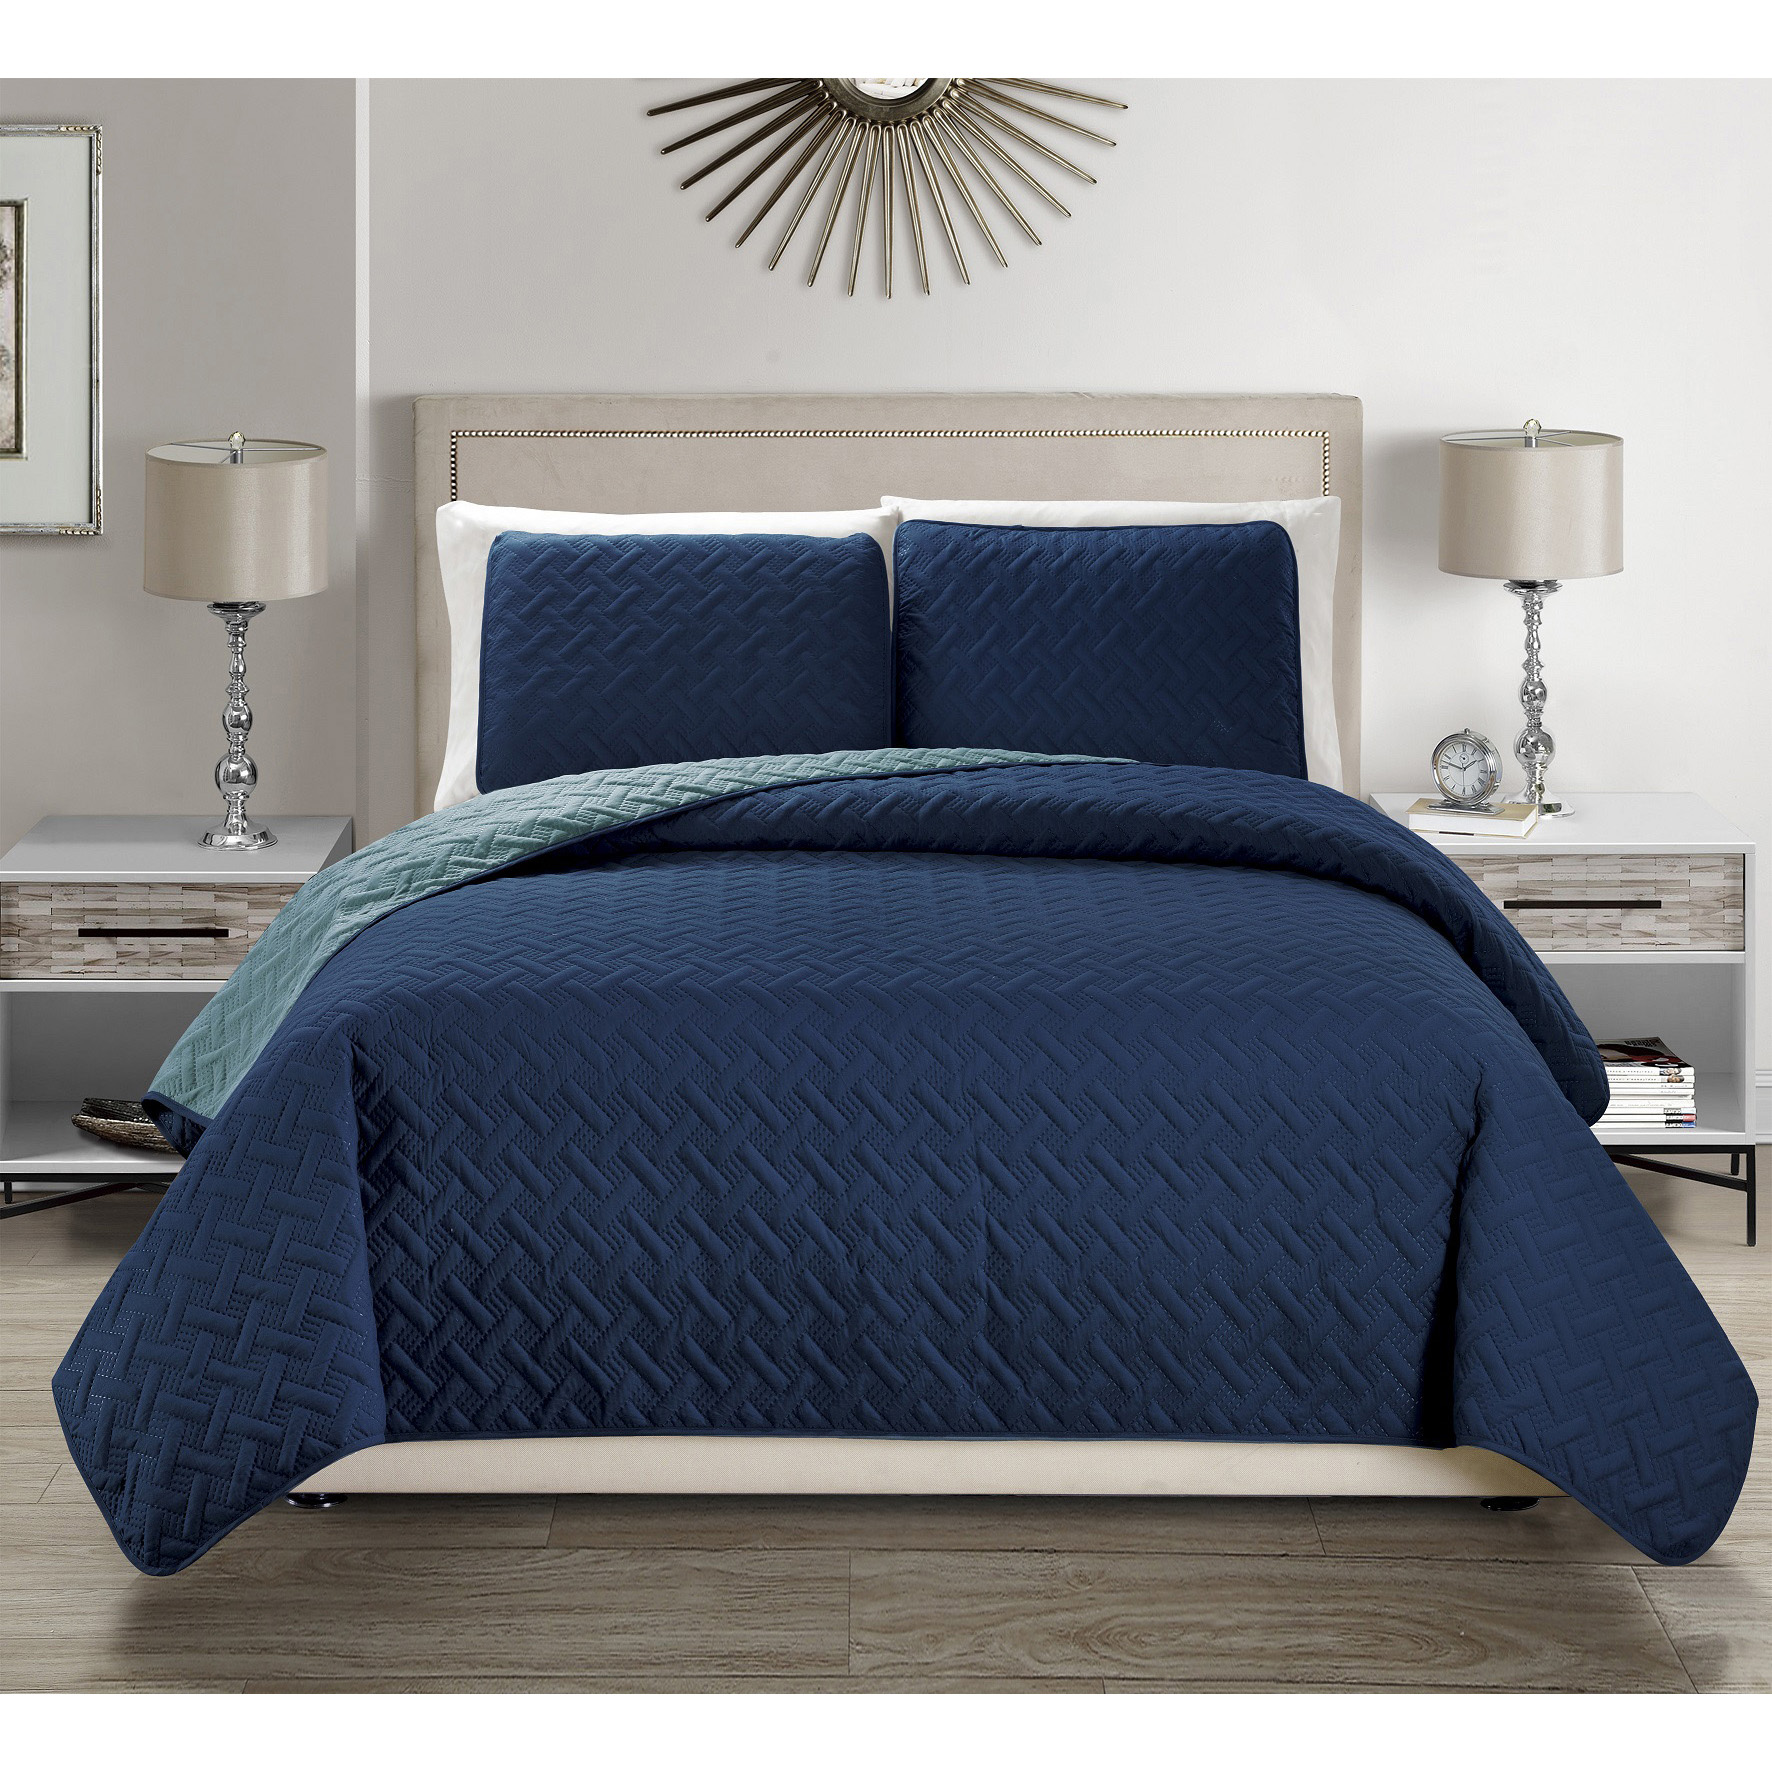 Fashion Street Simplicity 3pc Quilted Bedspread Set, Charcoal/Gray Queen